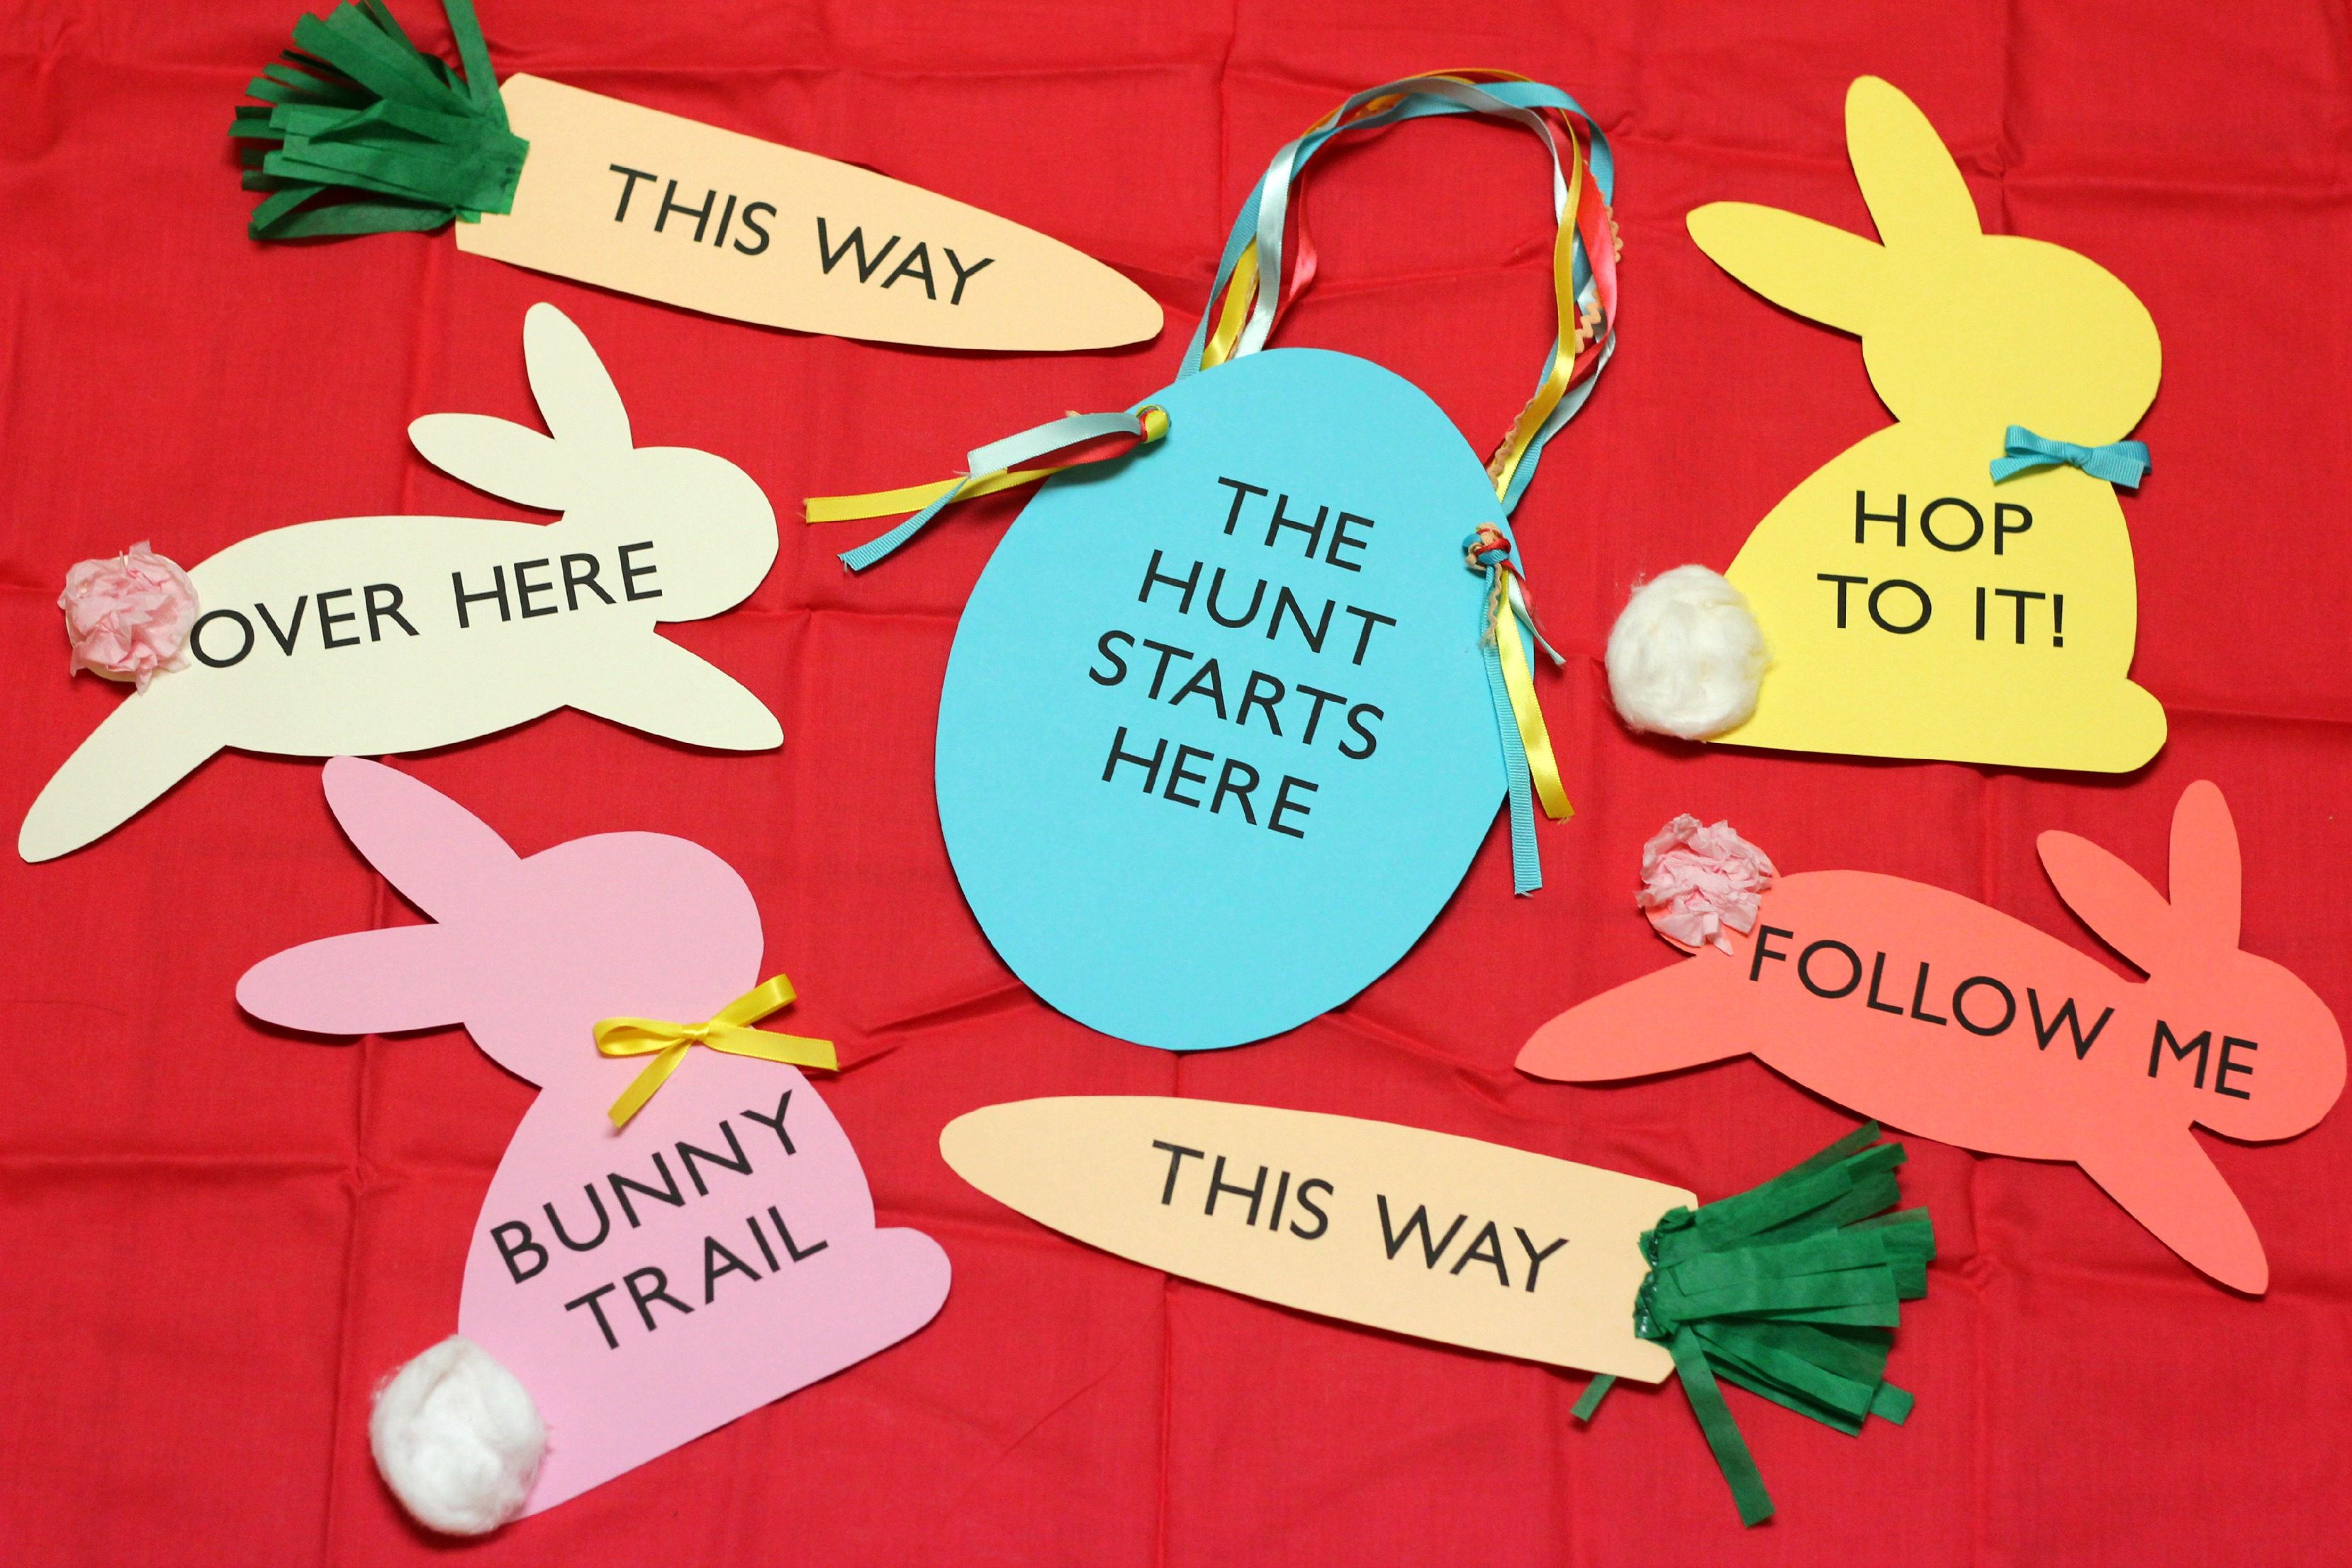 Easter Egg Hunt Signs Kit Giveaway